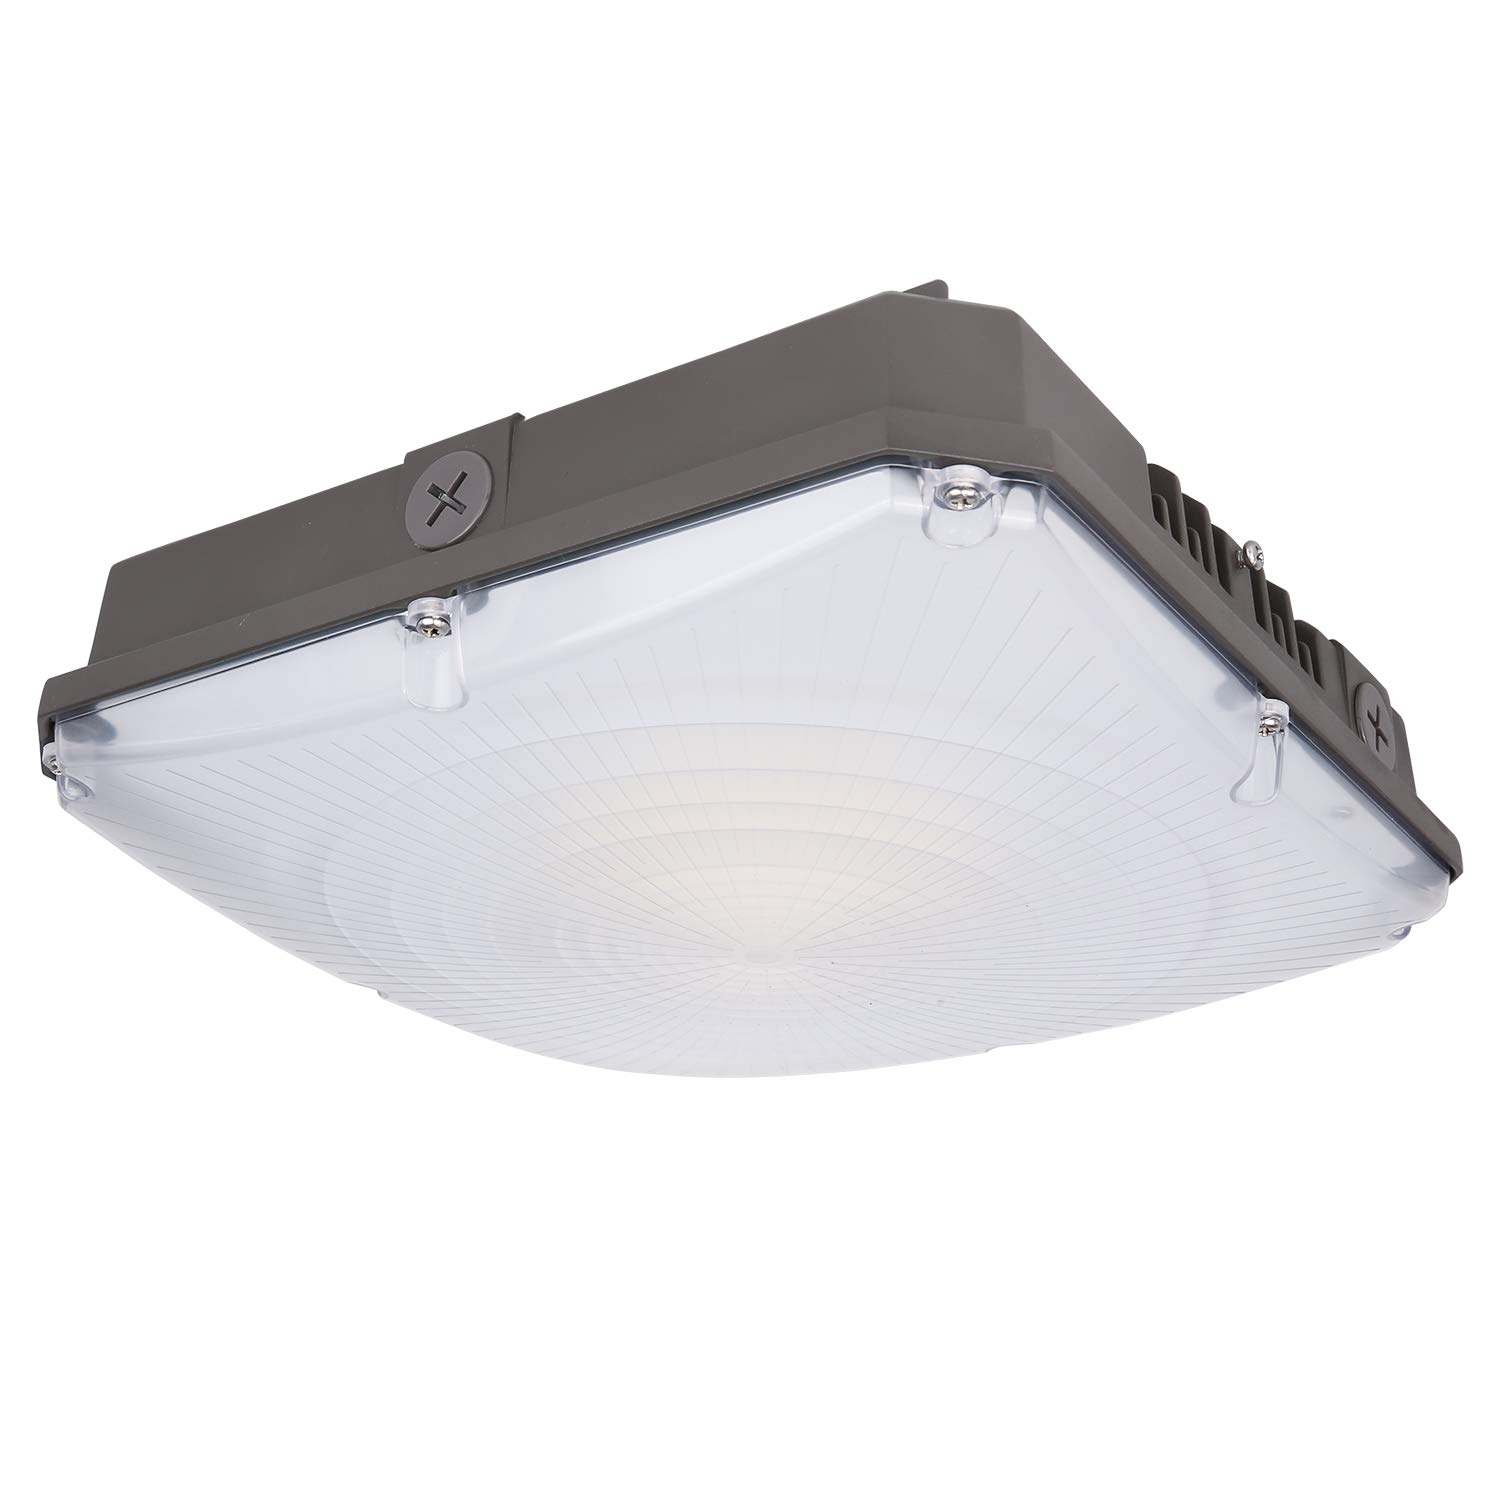 Hykolity 70W LED Canopy Light, 8400lm Outdoor LED Parking Garage Lights, Wet Rated Low Bay Soffit Lighting Fixture for Apartment Carport, 5000K, 1-10V Dimmable [400W MH Equivalent]